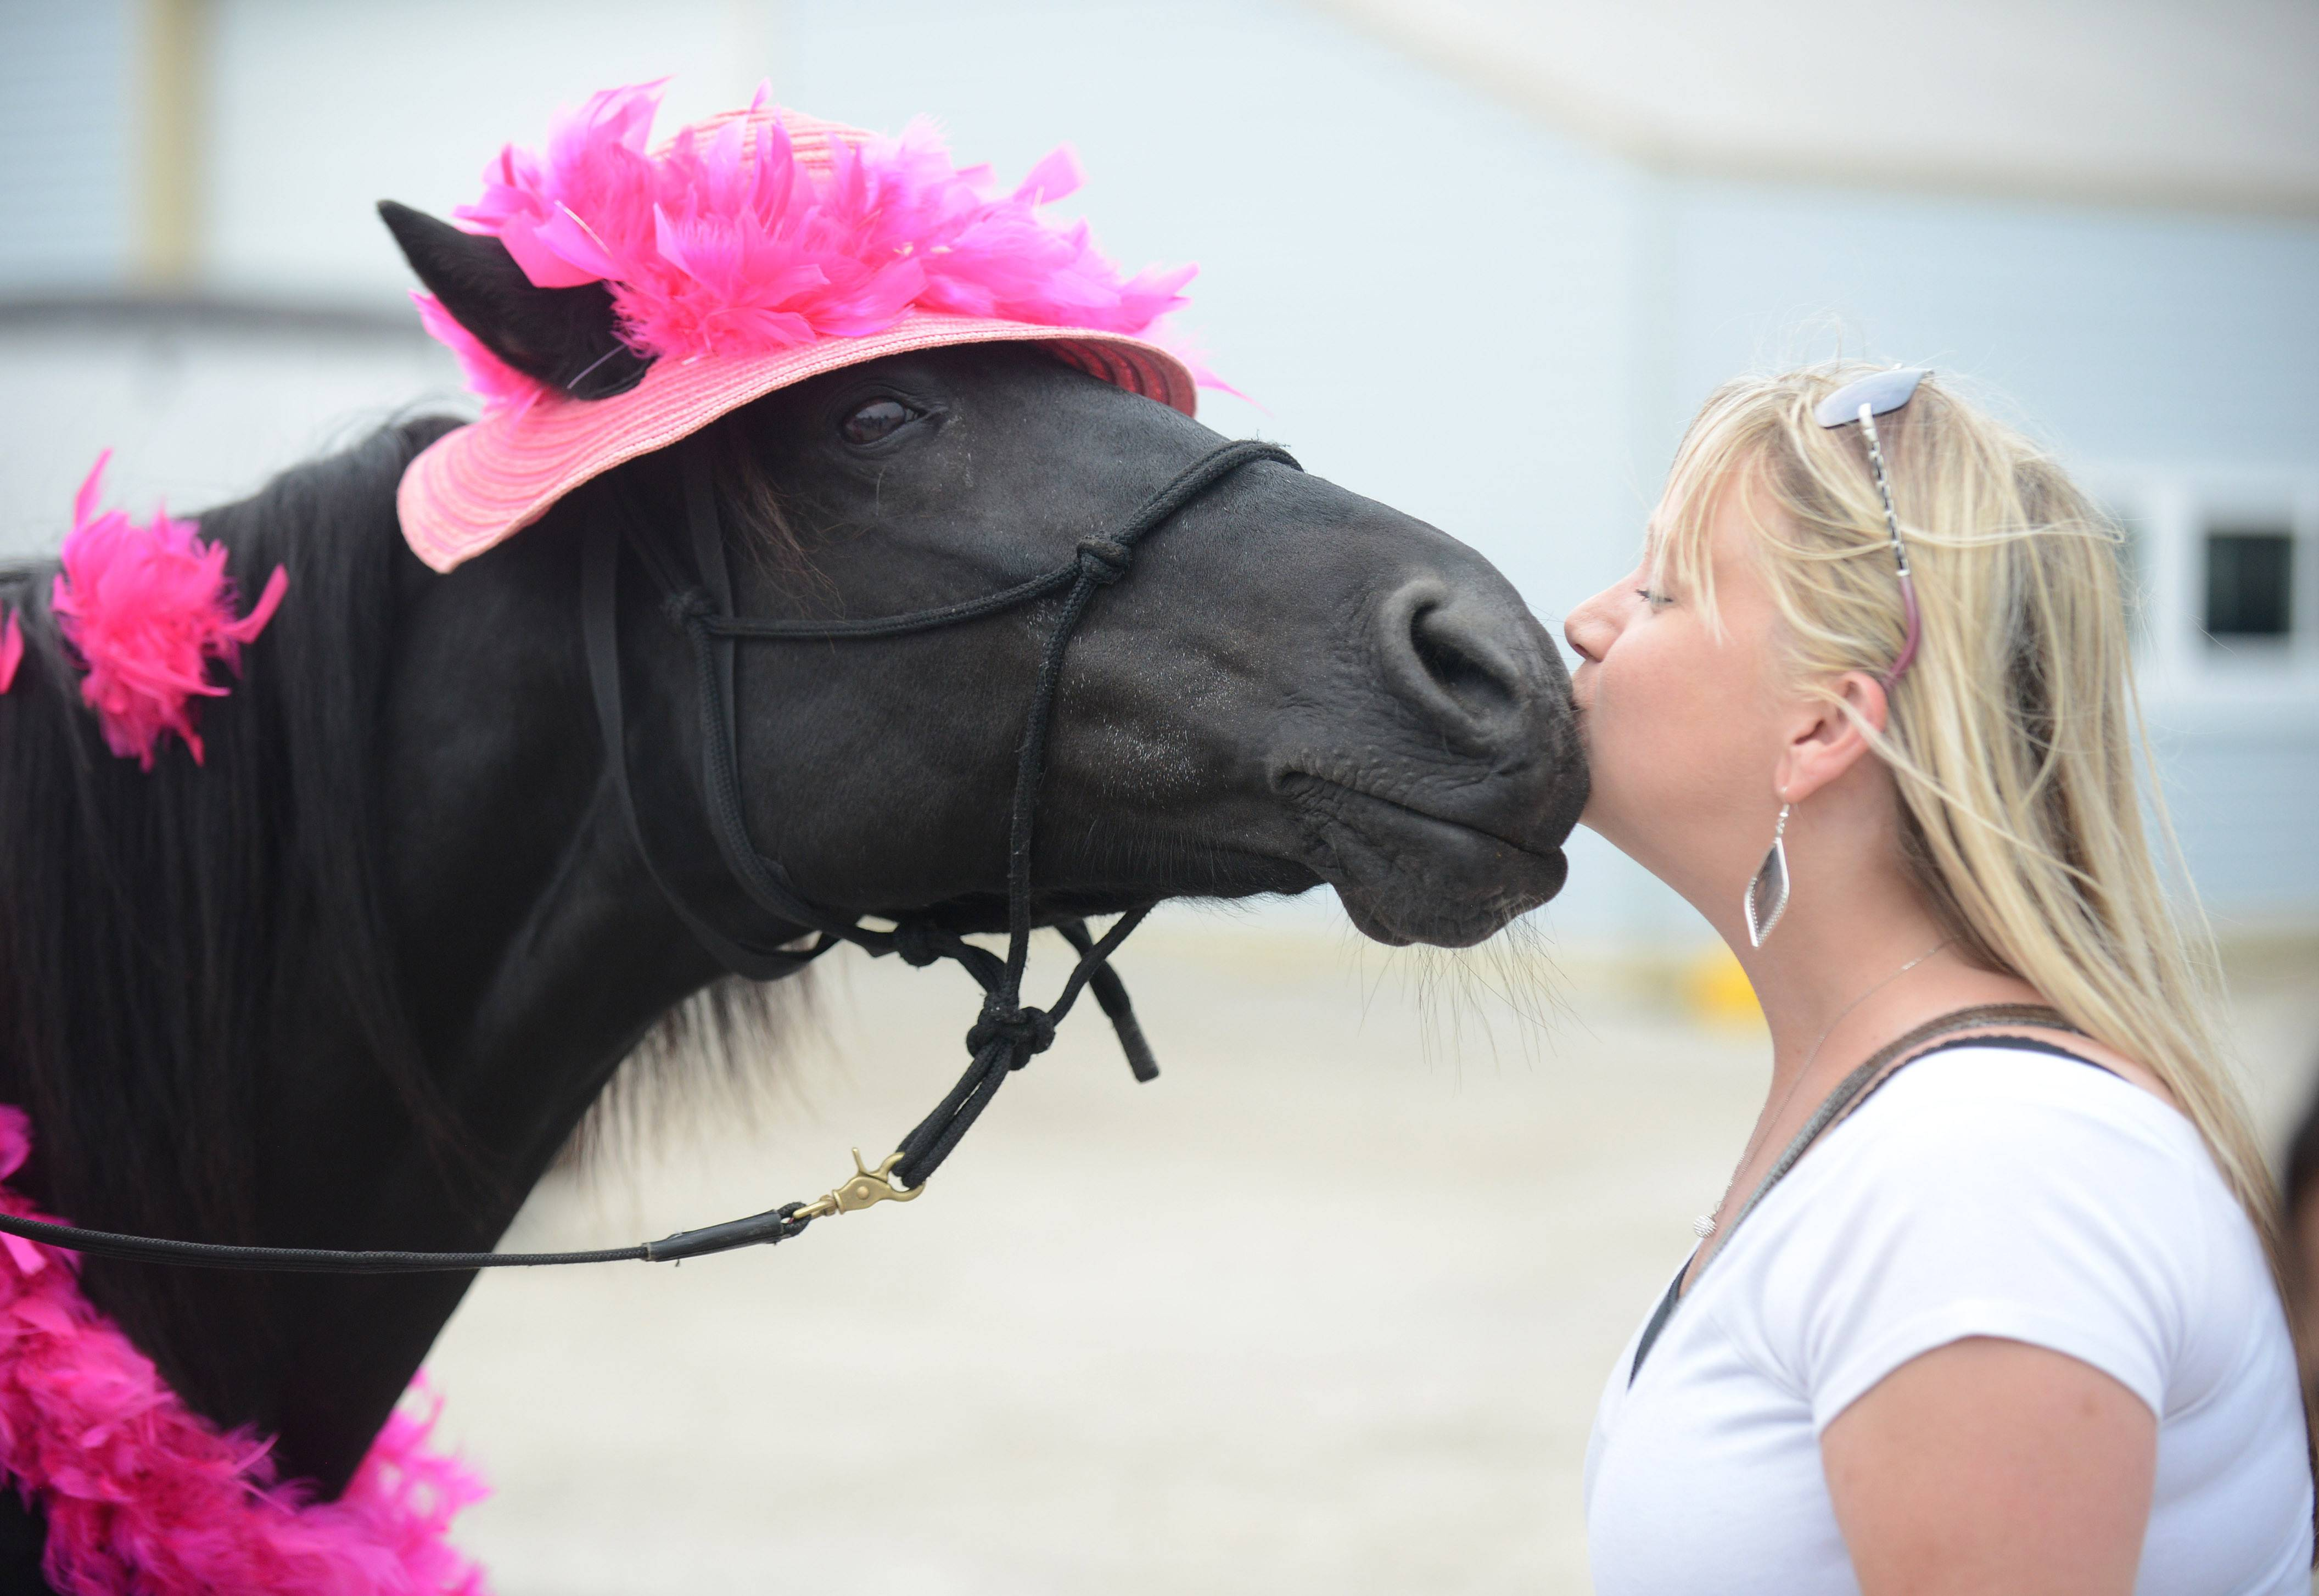 Magic the horse plants a kiss on Michelle Tuozzo of Huntley at the Festival of the Horse and Drum at the Kane County Fairgrounds in St. Charles Saturday. Magic and her owner, Peggy Gower of Wayne, were walking around the grounds showing off tricks and doling out kisses.